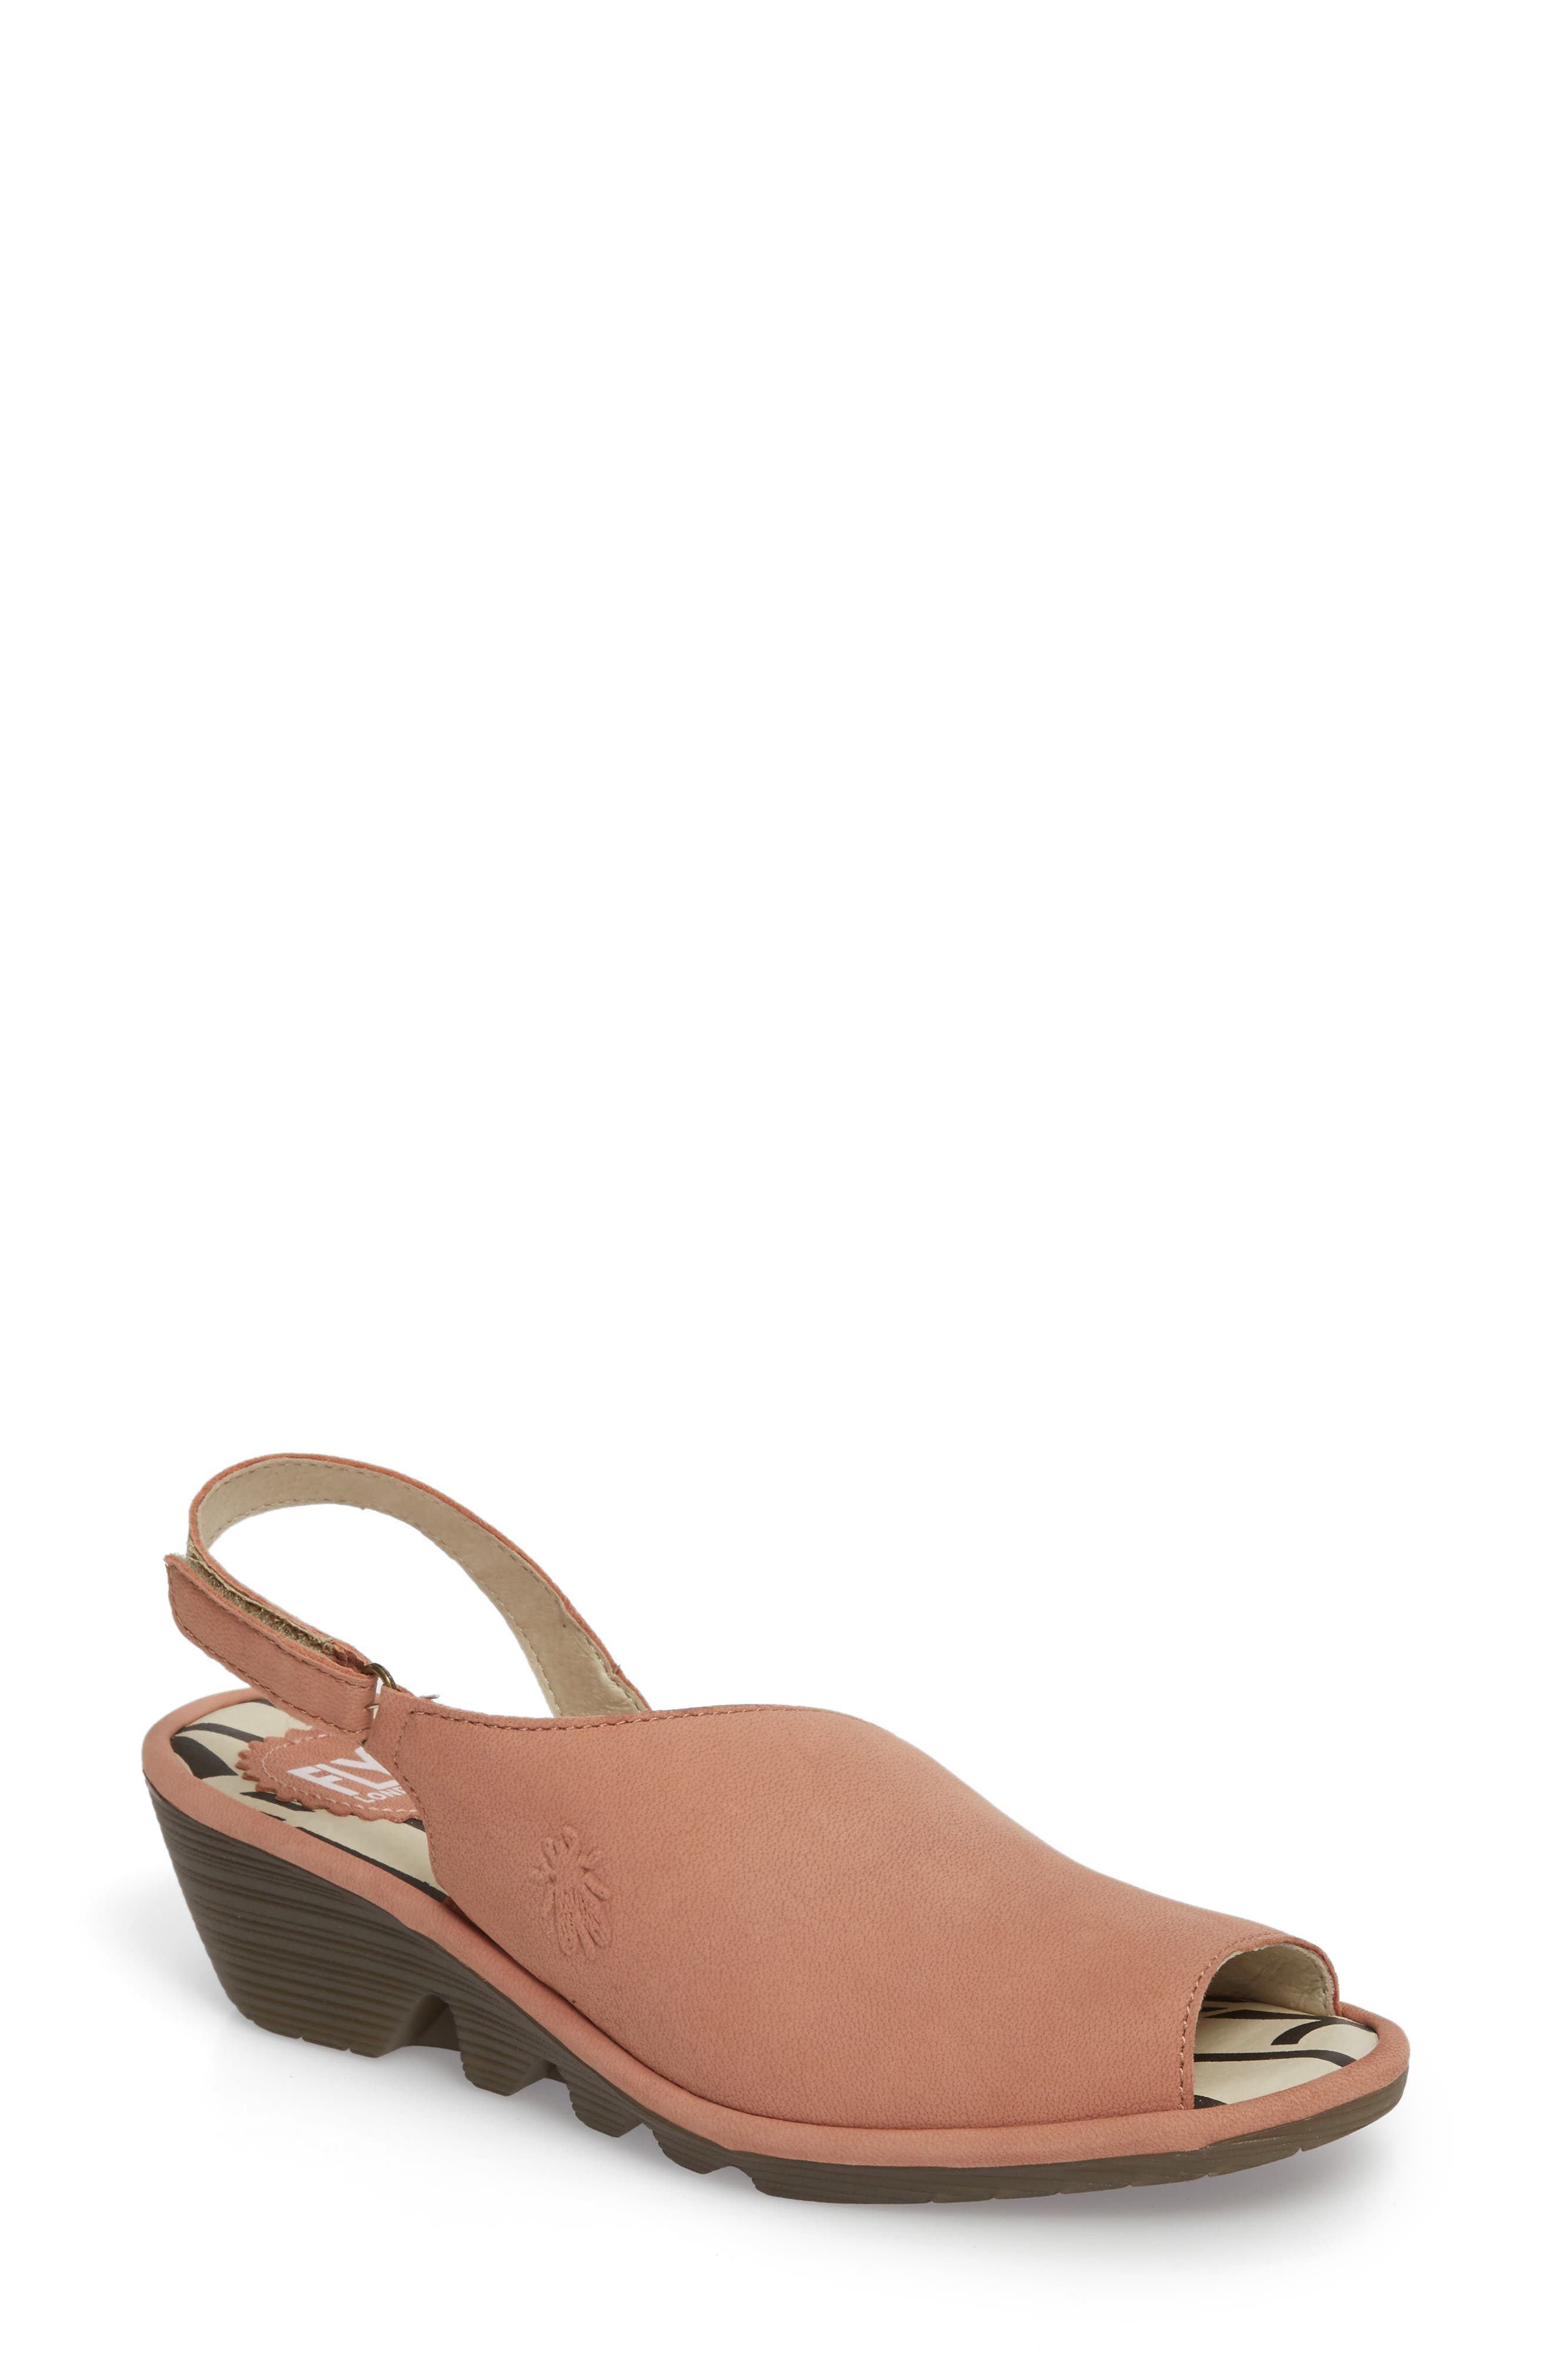 Fly London Palp Wedge Sandal - Red